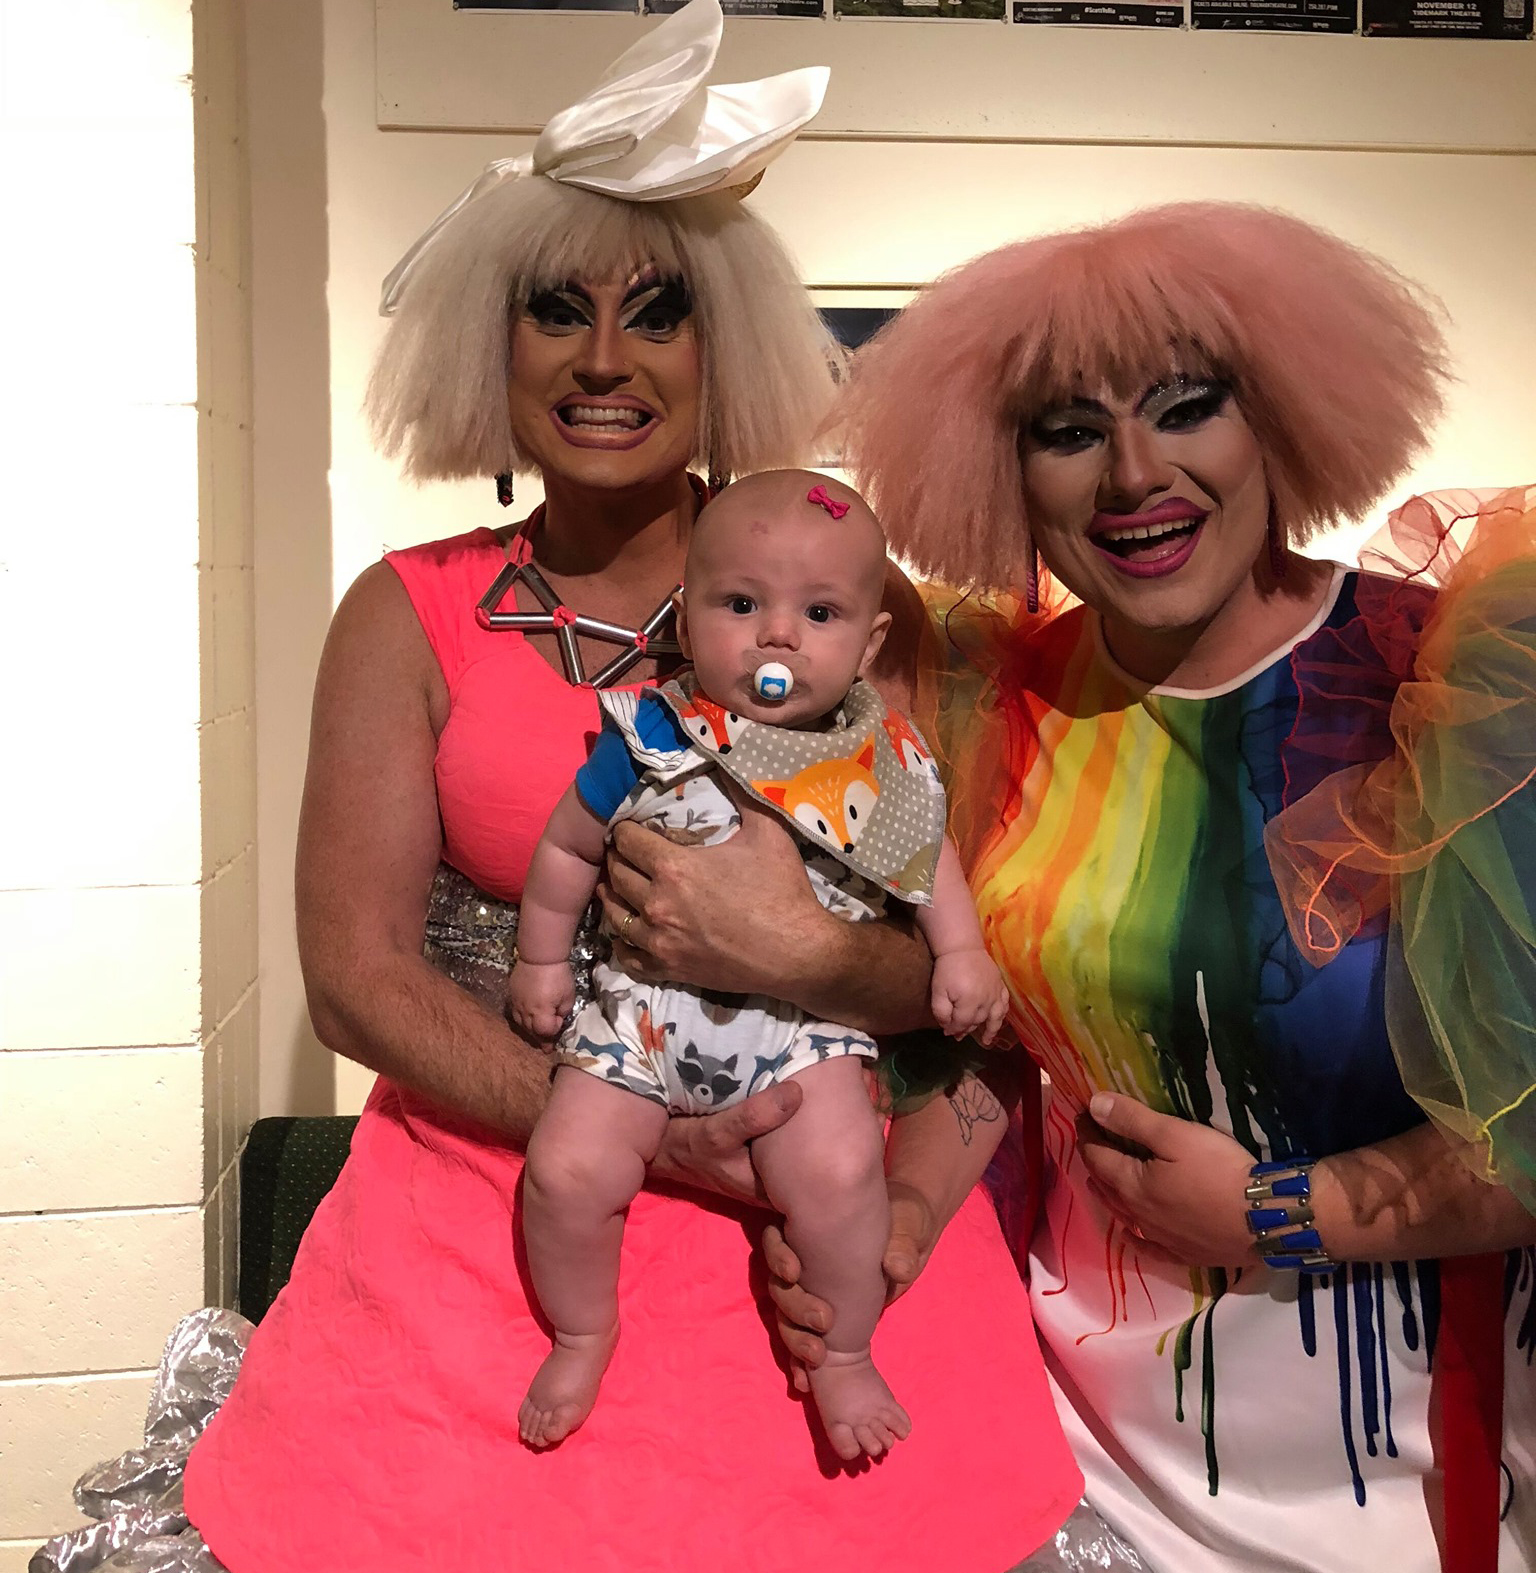 Parents Are A Drag - by Zee Zee Theatre and Vancouver International Children's Festival